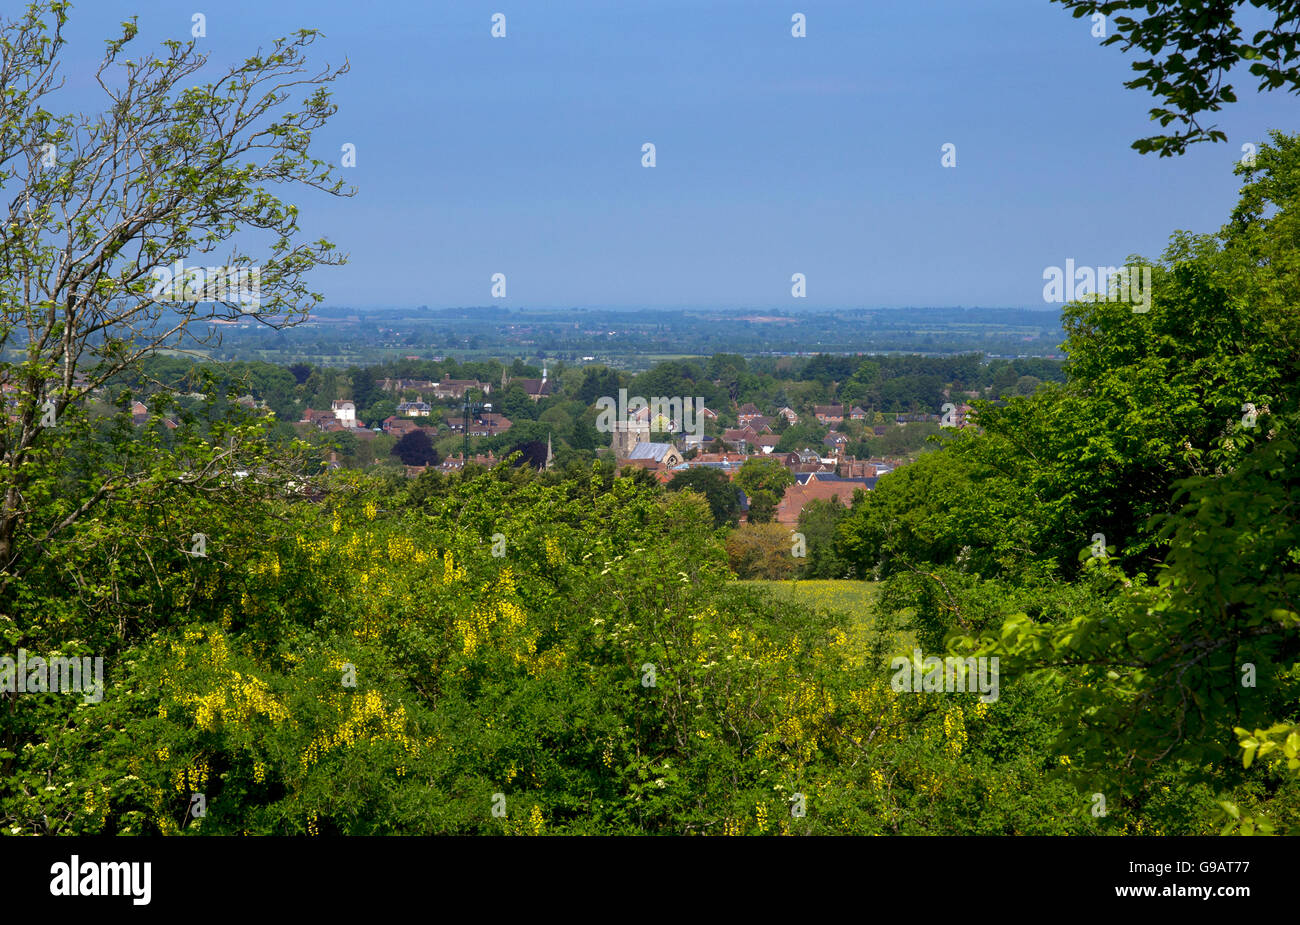 Wantage Thames valley Oxfordshire - Stock Image